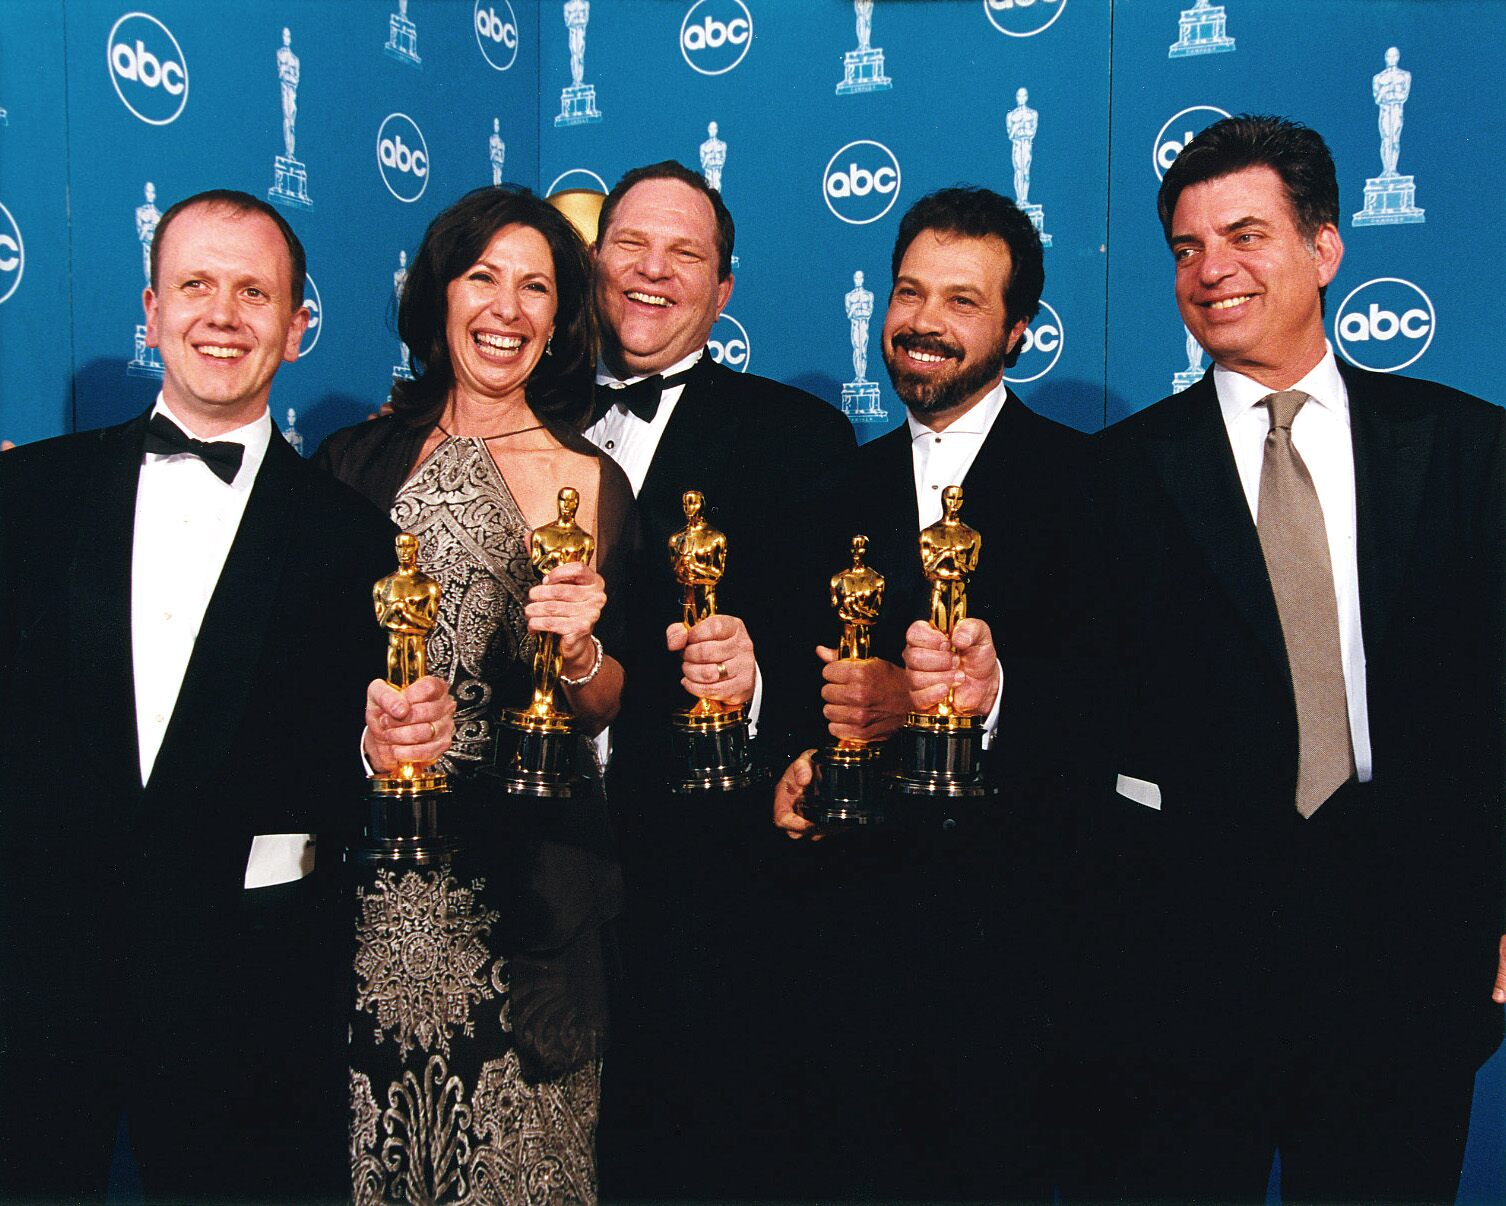 Theeb besides 81088902 in addition 2017 Oscars Full List Of Foreign Language Film Oscar Submissions further 2007 also Qa Iconic Couples Vote Counts Favorite Kurosawas. on oscar nominees 2016 foreign film